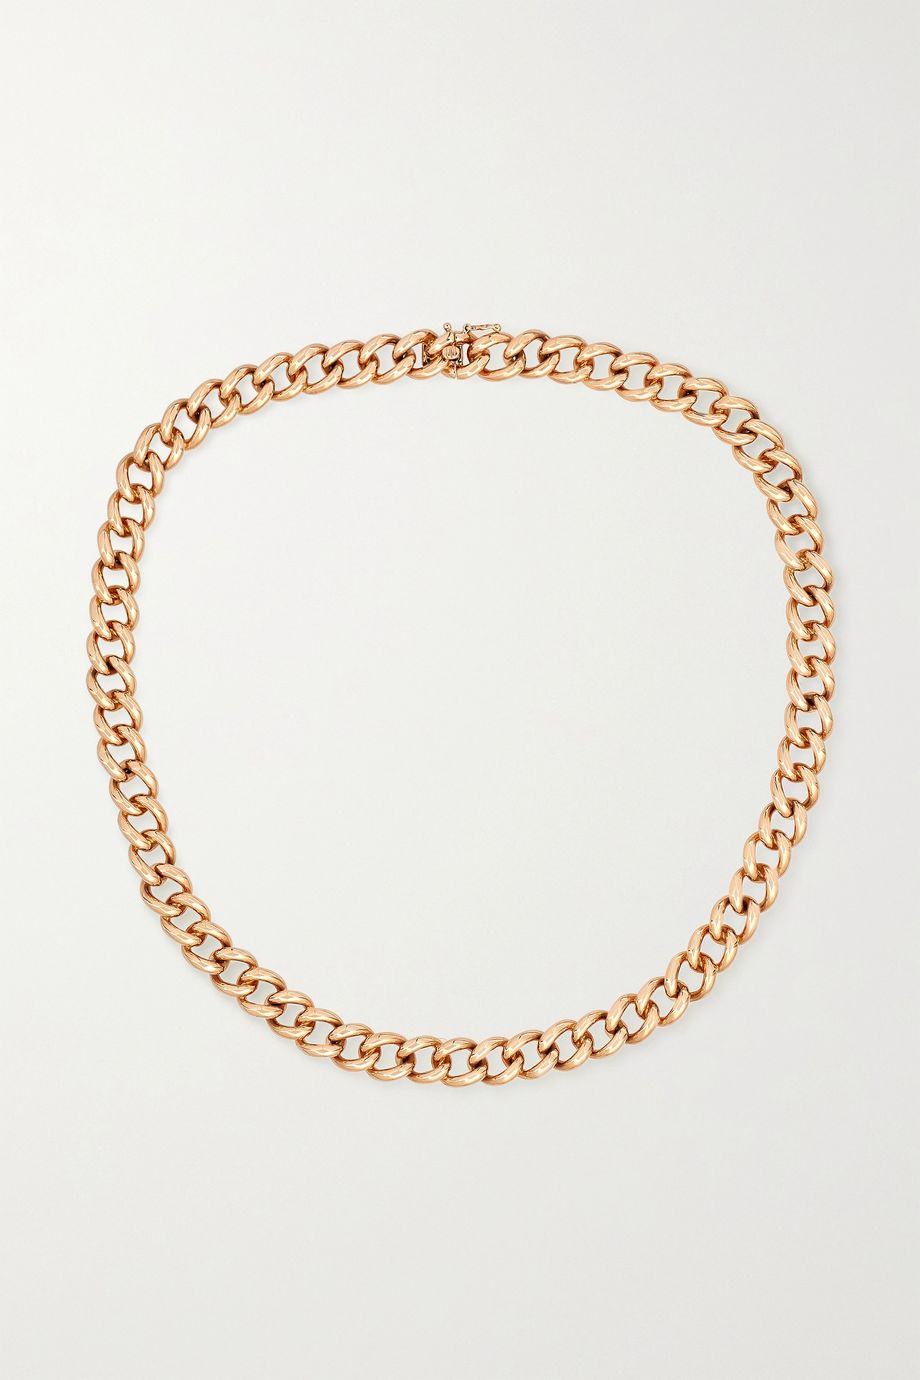 Anita Ko 18-karat rose gold necklace